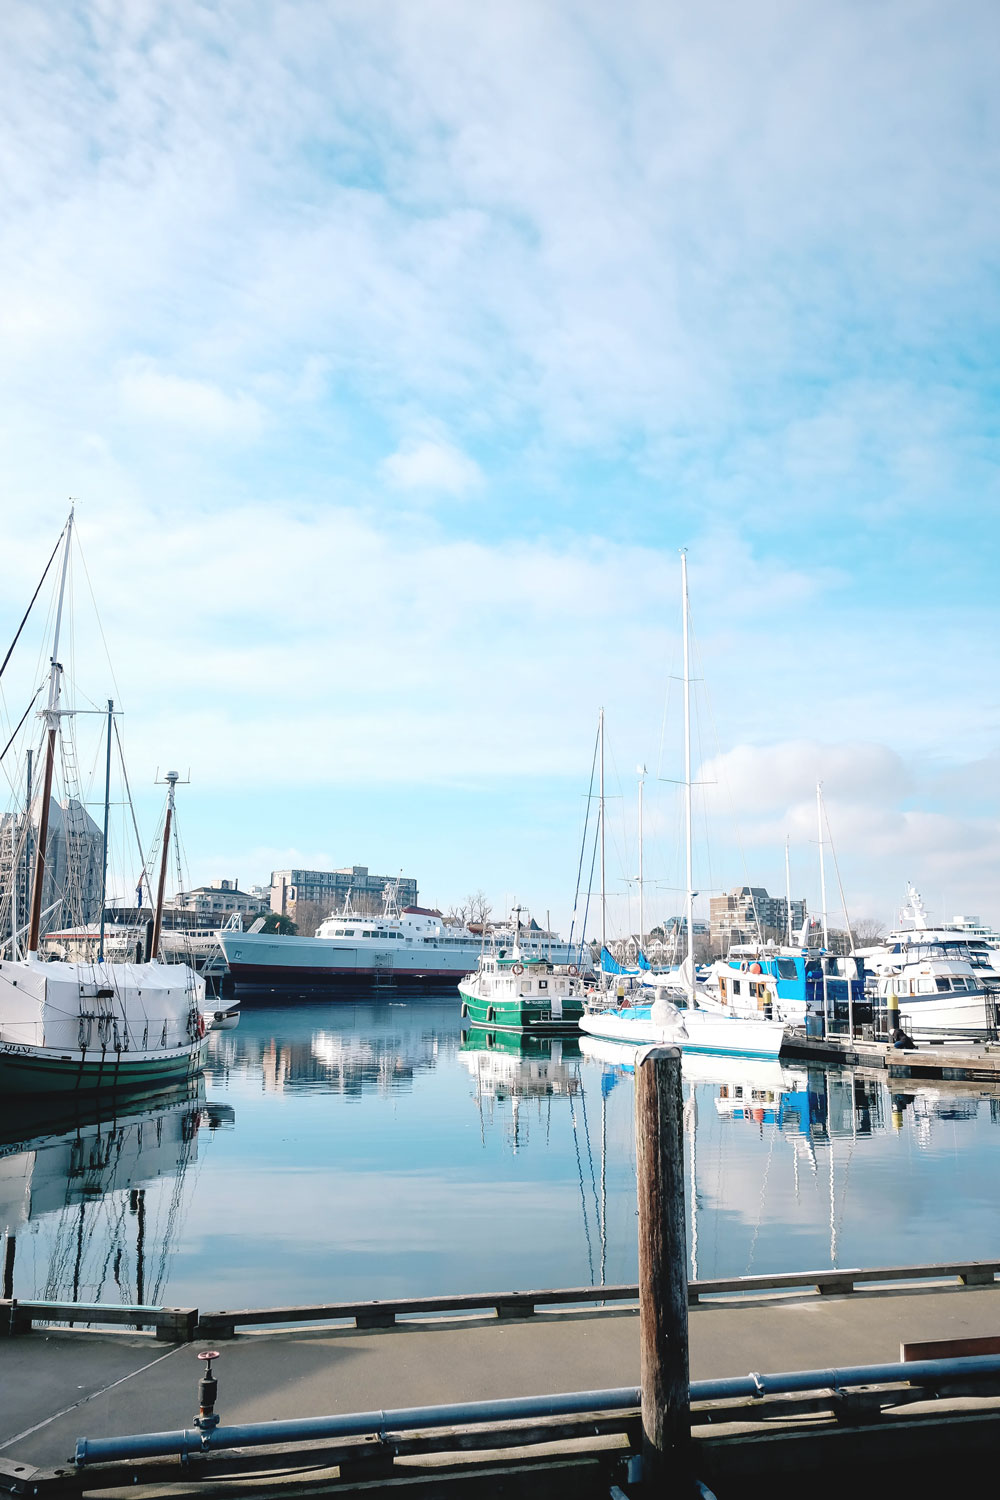 What to see in Victoria BC - Harbour Air sea plane, parliament buildings, Fan Tan Alley, Nourish Victoria, Discovery Coffee, Victoria Harbour